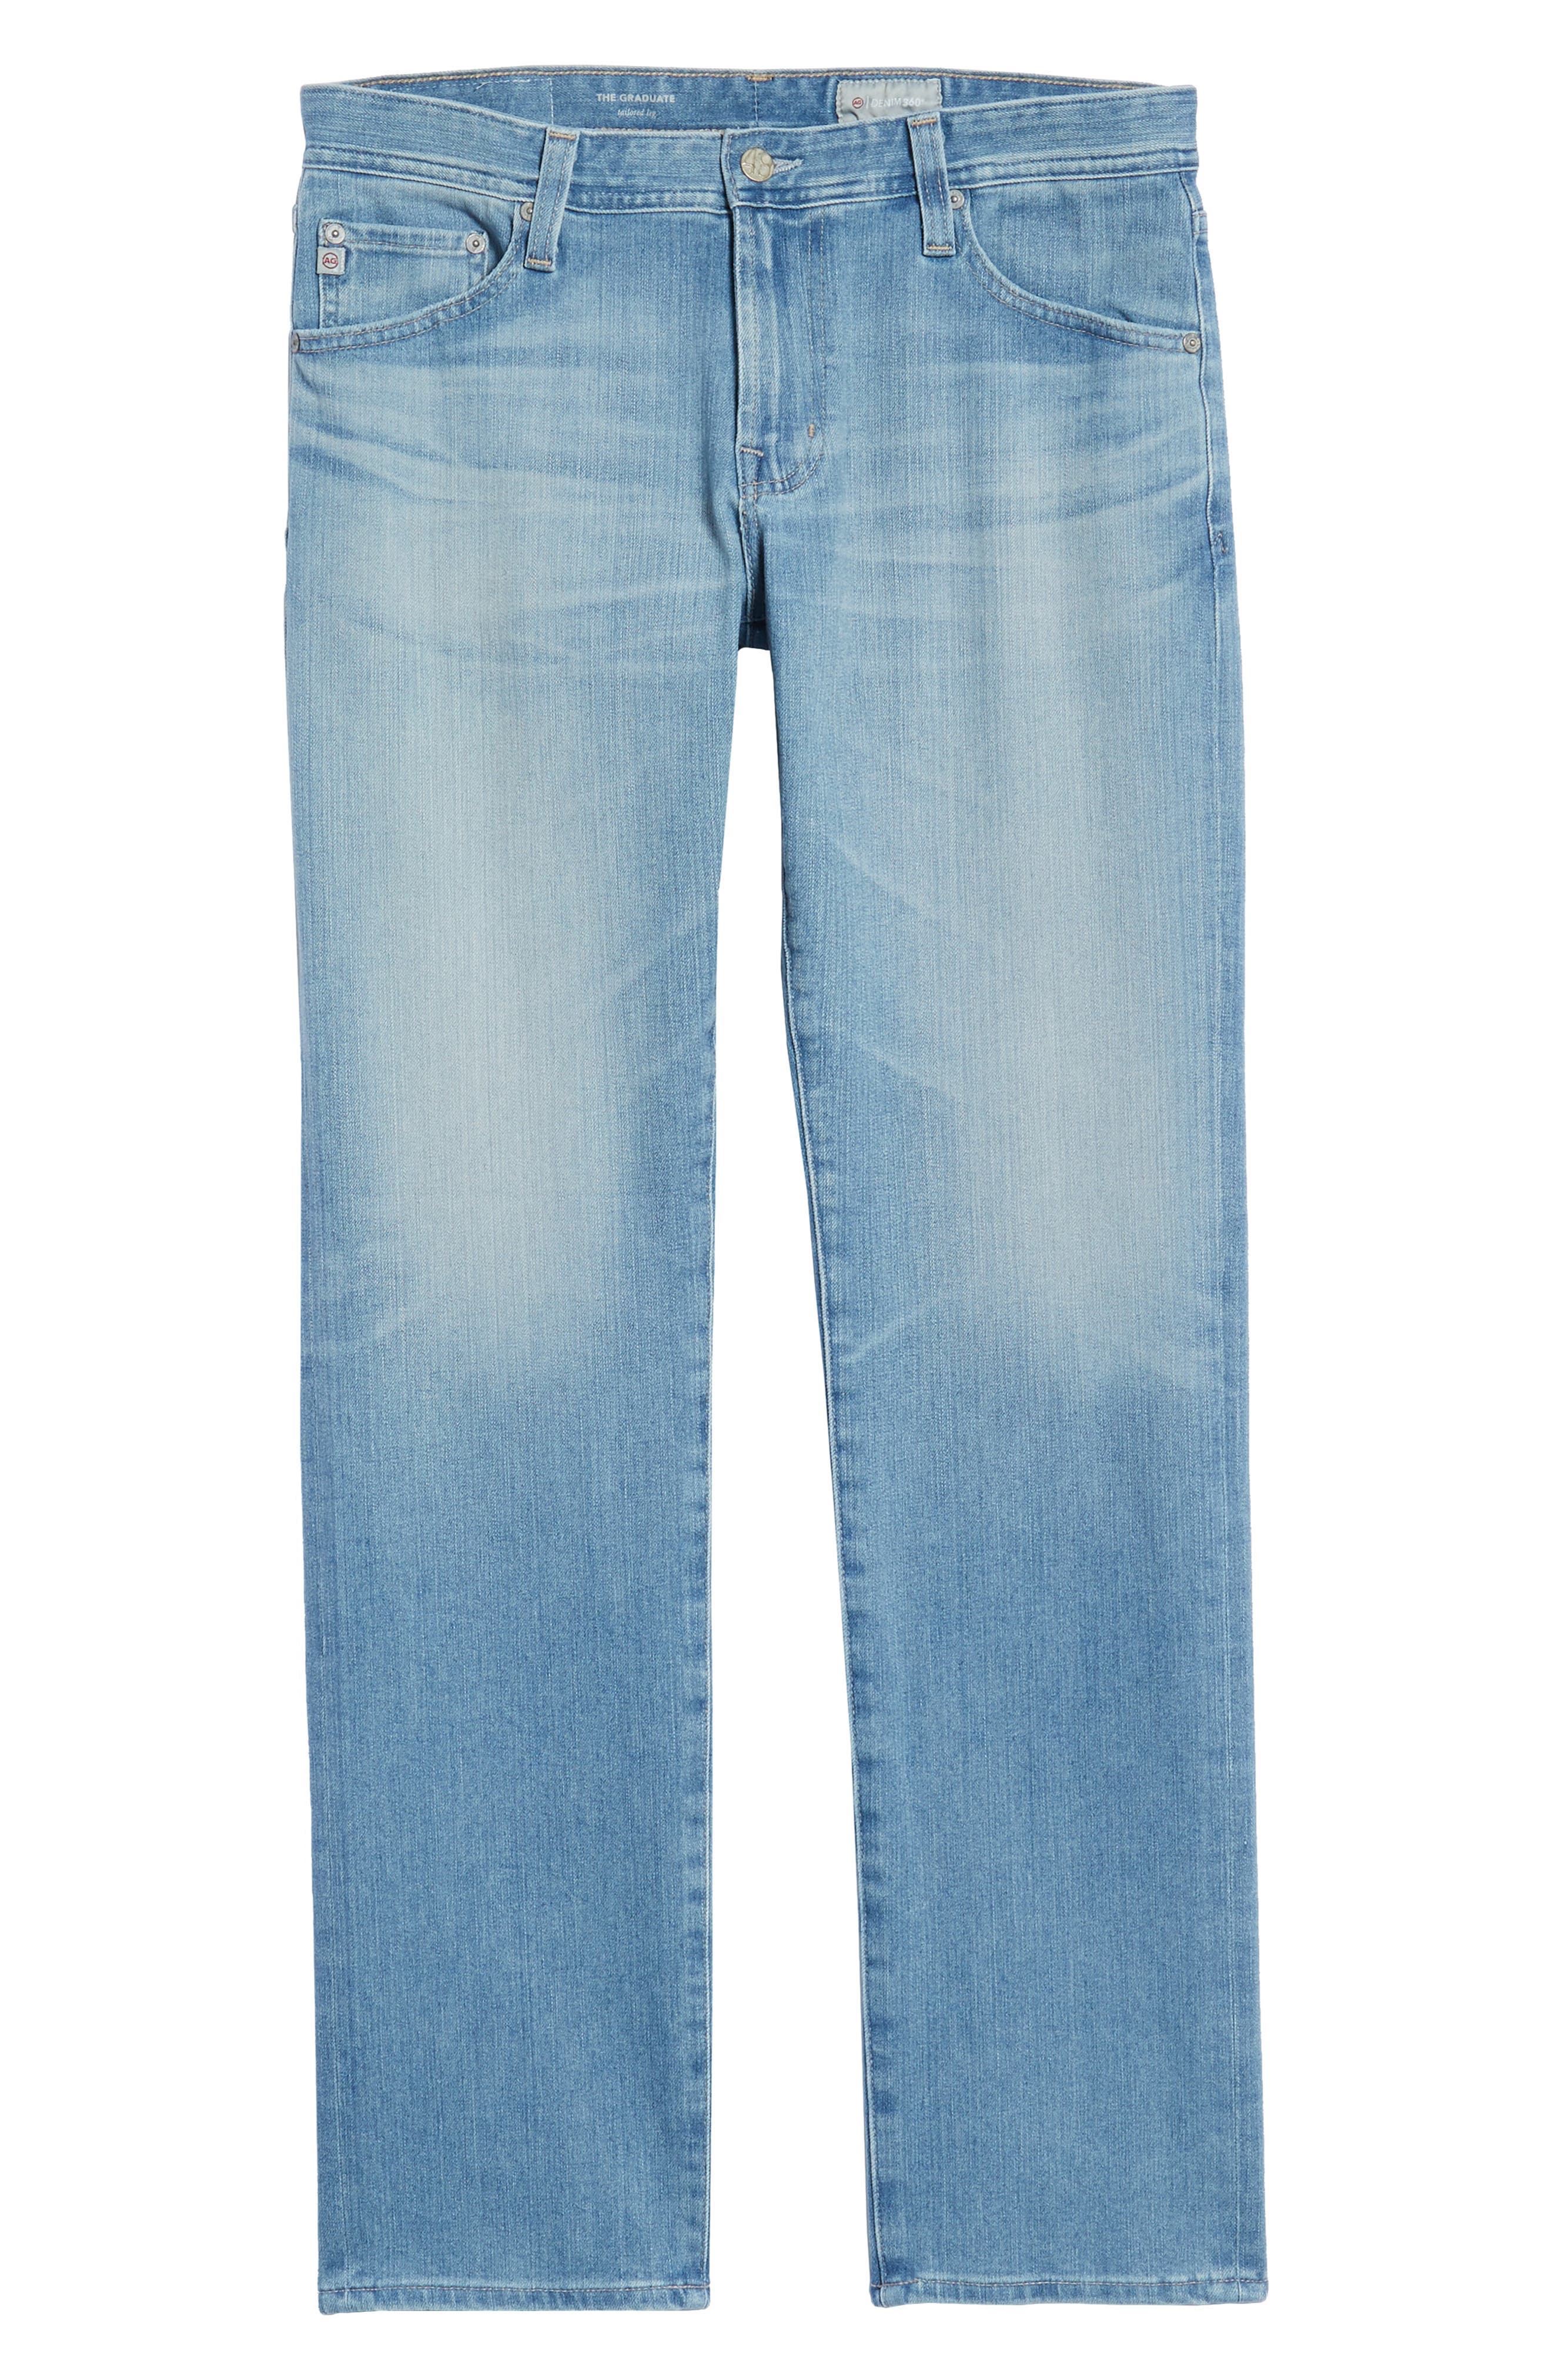 Graduate Slim Straight Leg Jeans,                             Alternate thumbnail 6, color,                             19 Years Channel